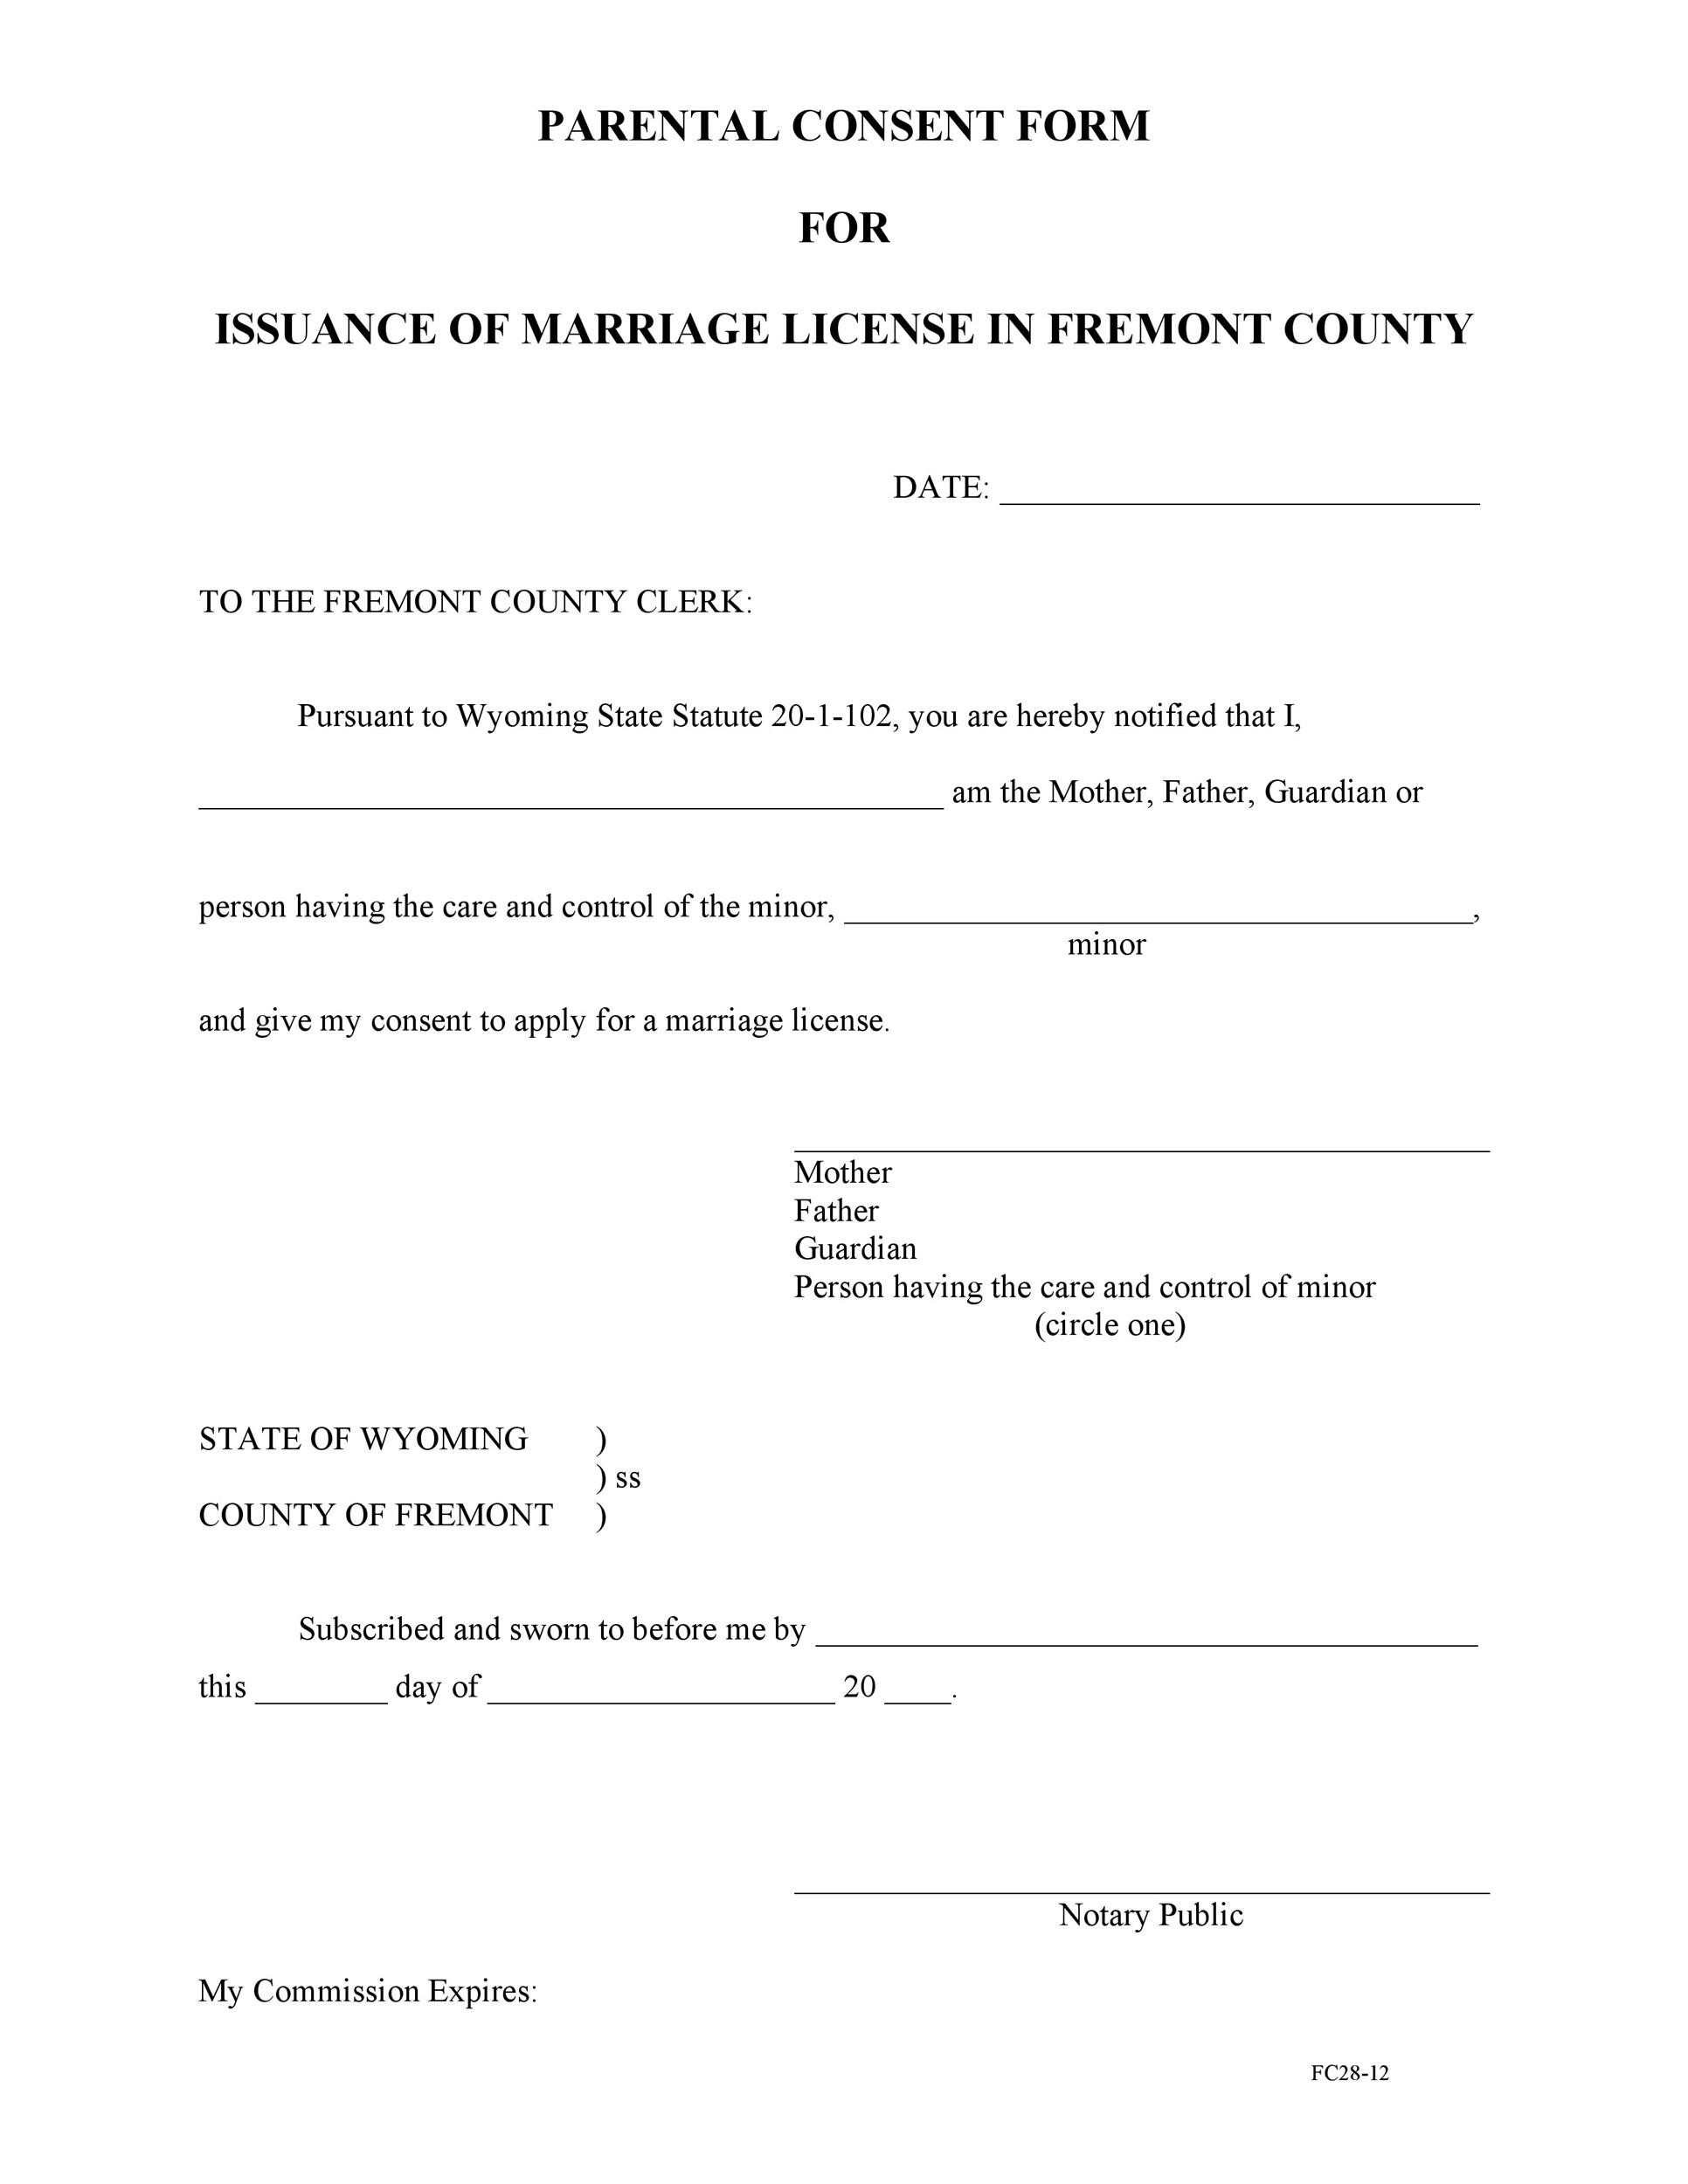 Free parental consent form template 24